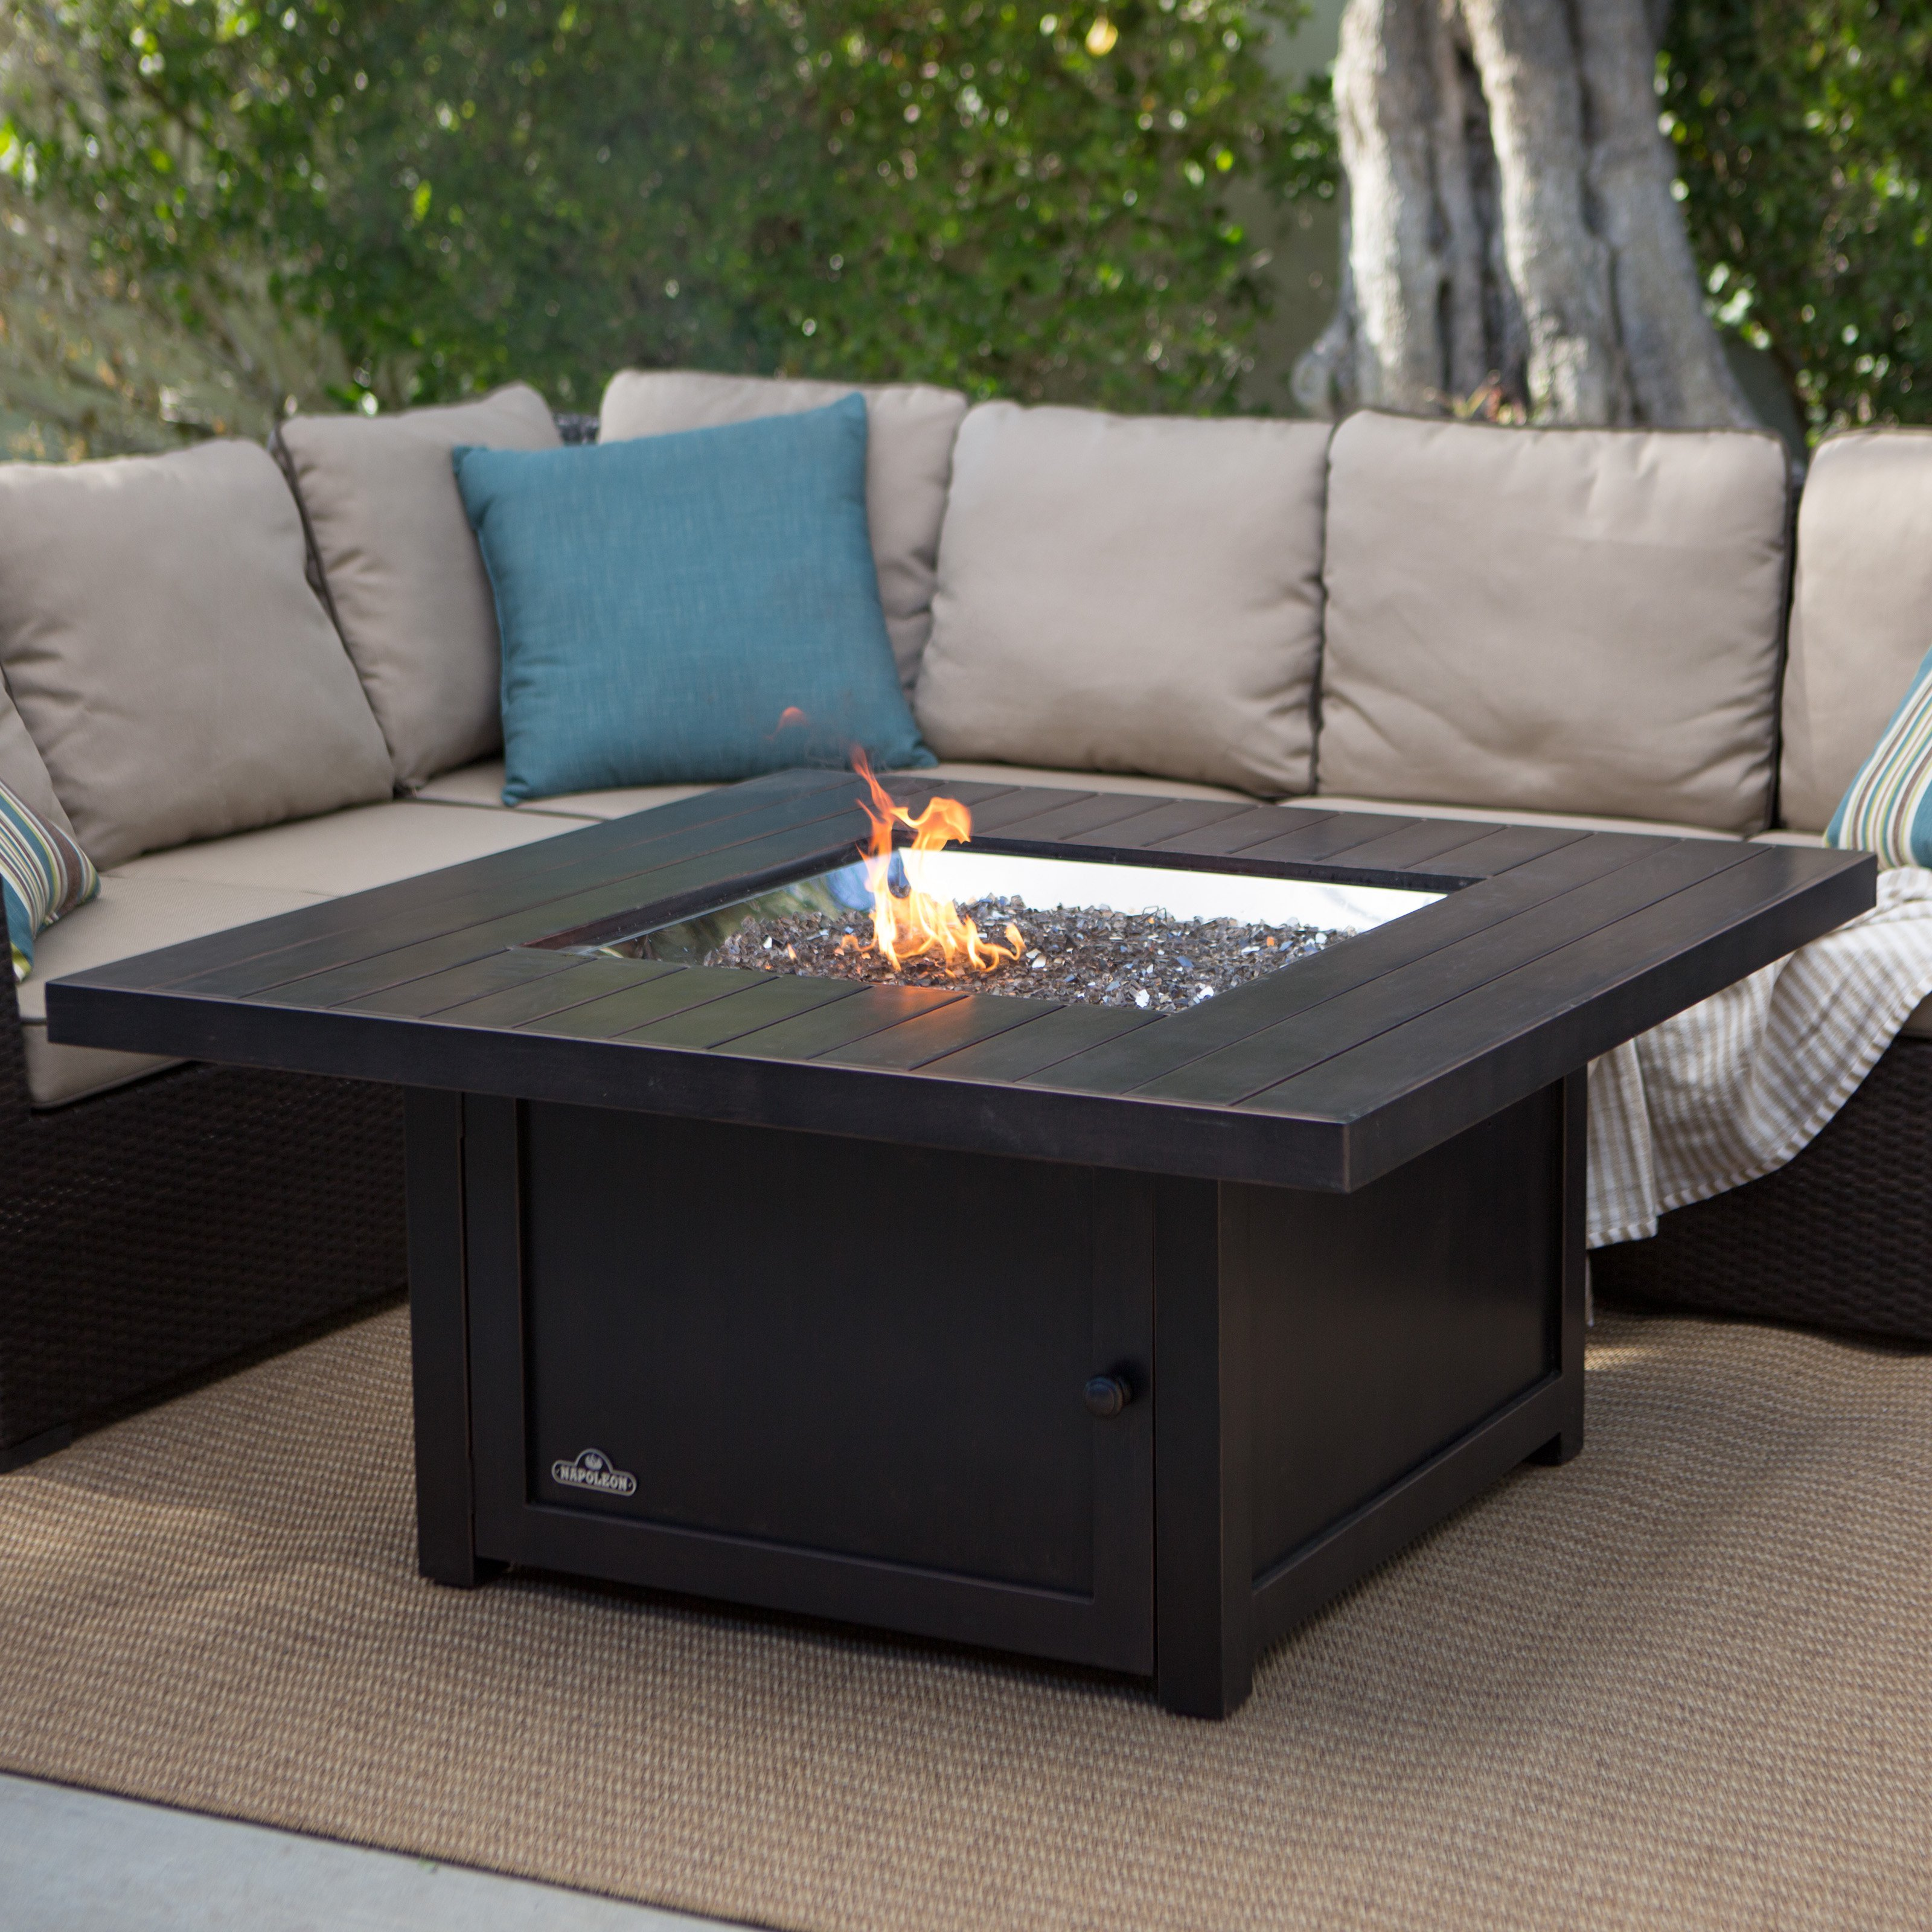 fire pit table and chairs cover anti gravity chair replacement cord kit ideas for outdoor patio homesfeed